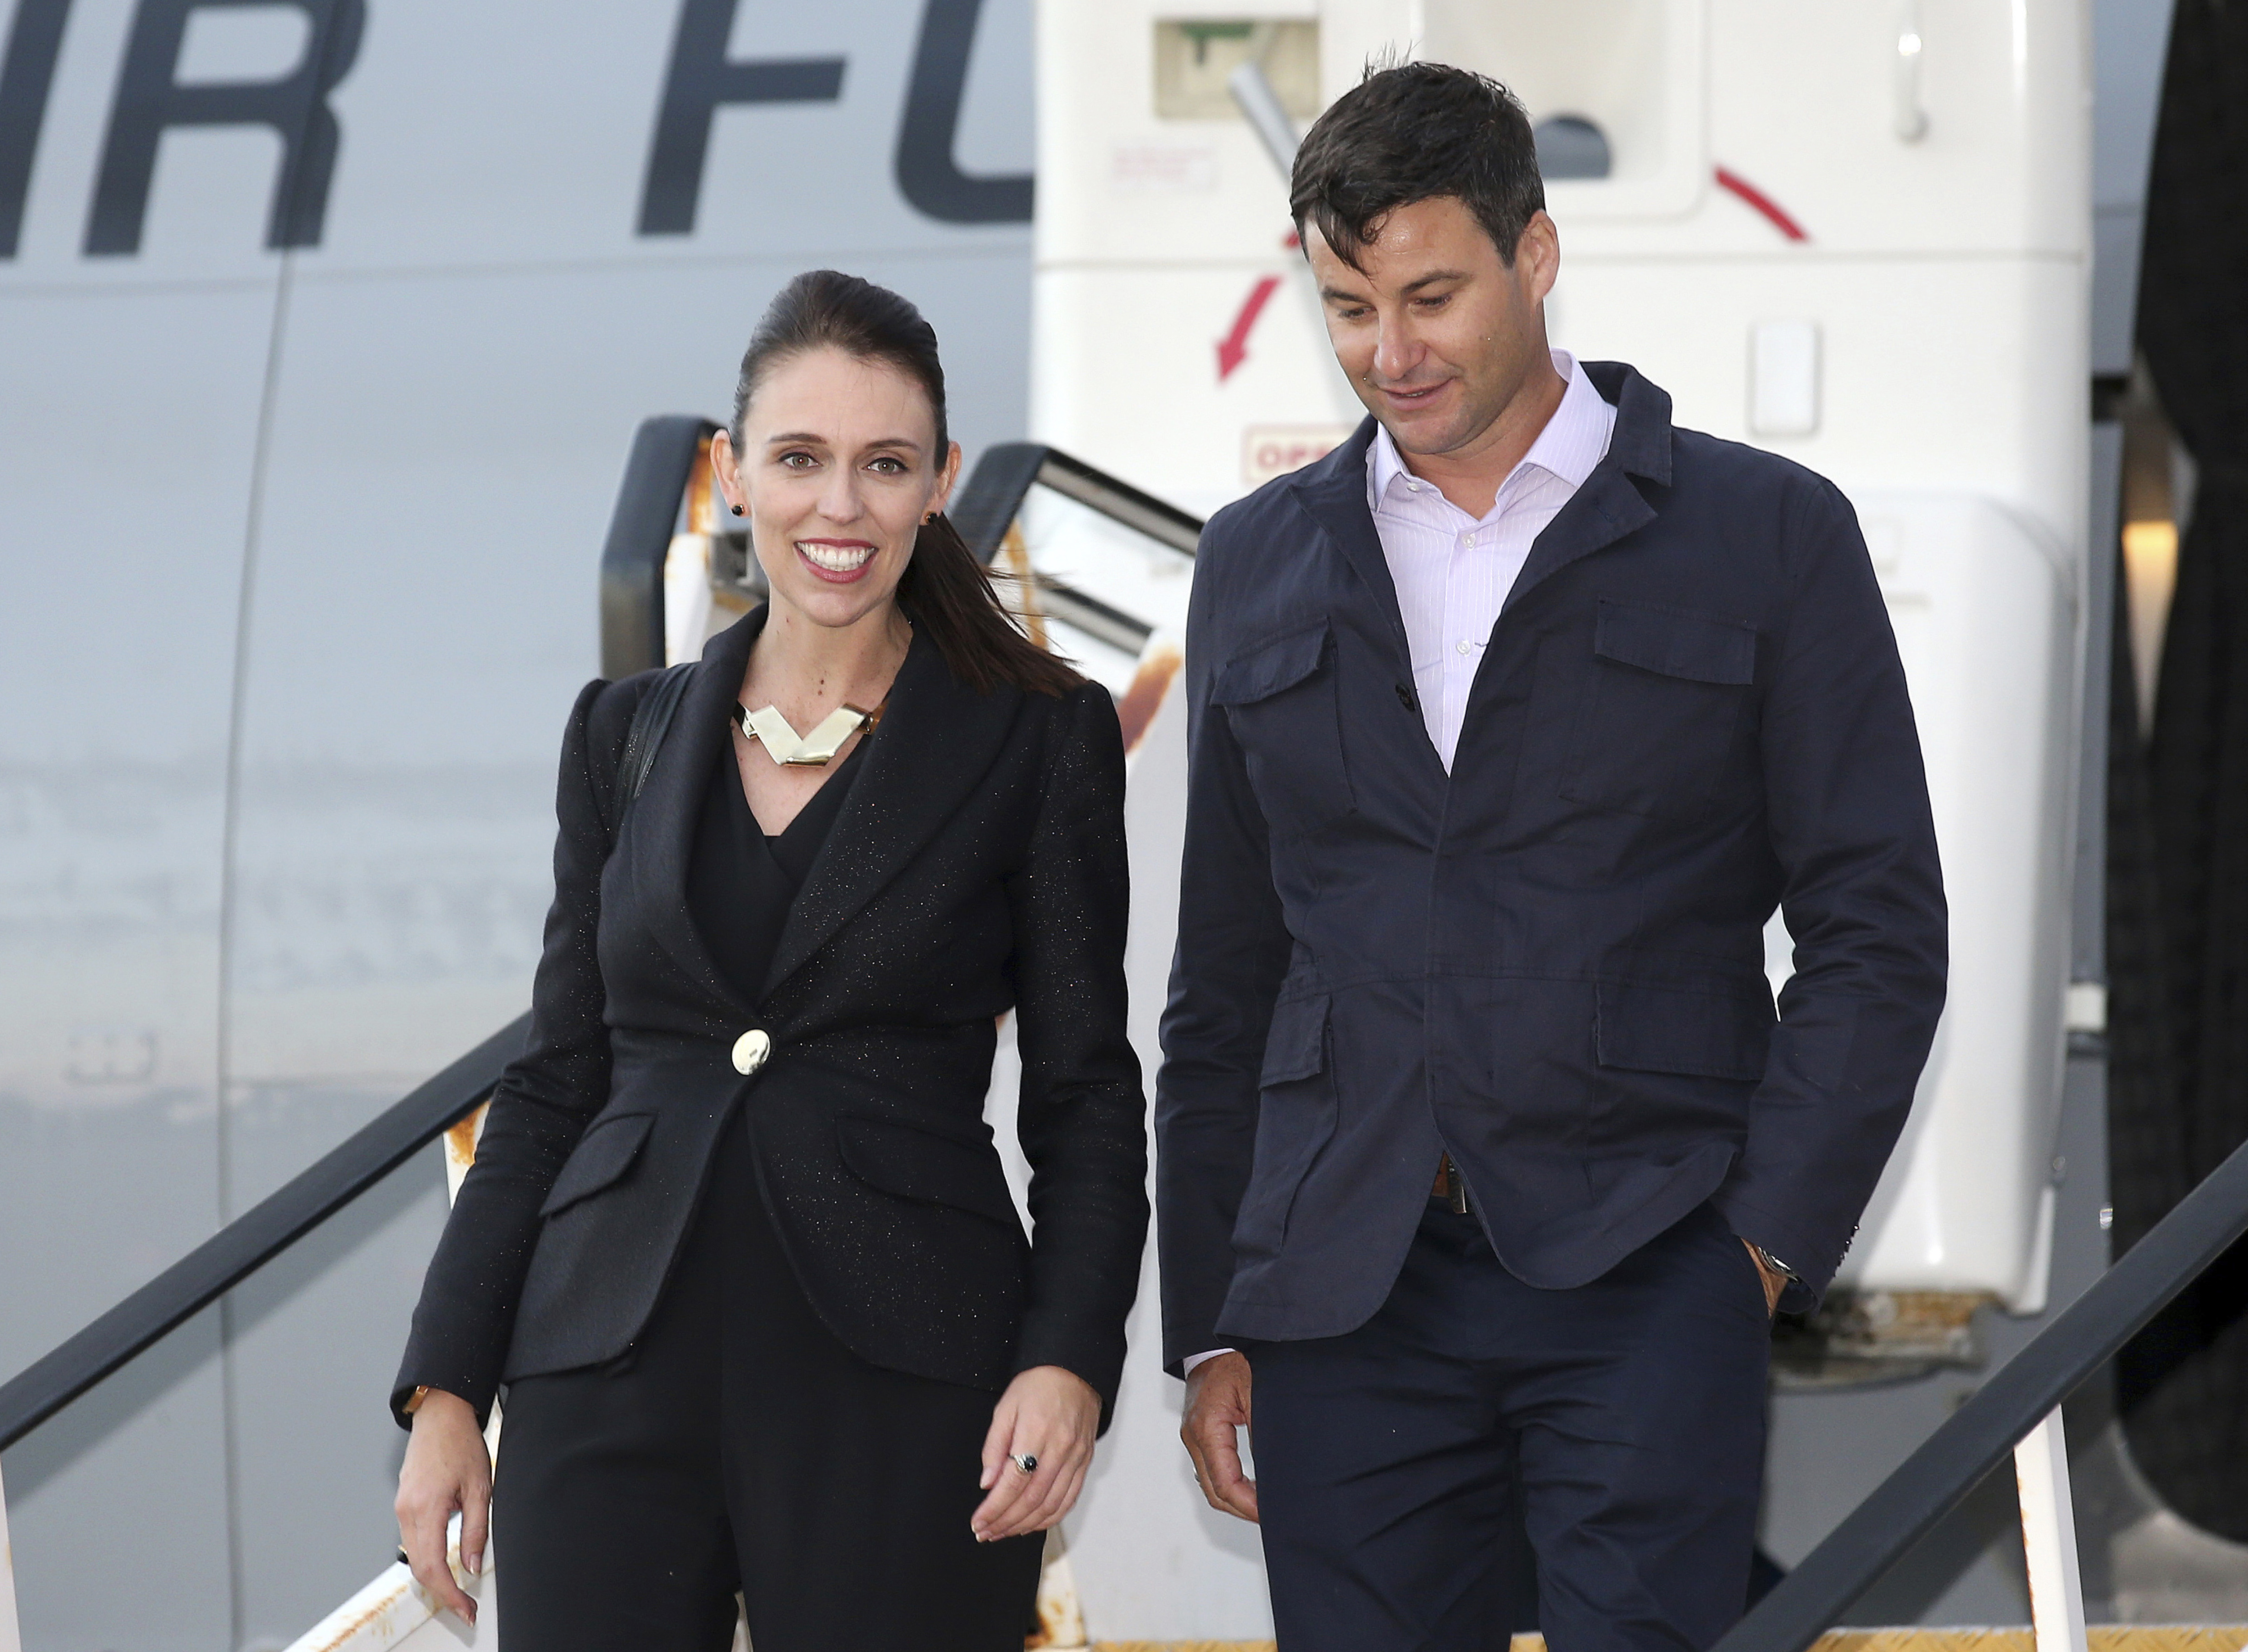 New Zealand Prime Minister Jacinda Ardern, left, and her partner Clarke Gayford arrive in Sydney on March 1, 2018.